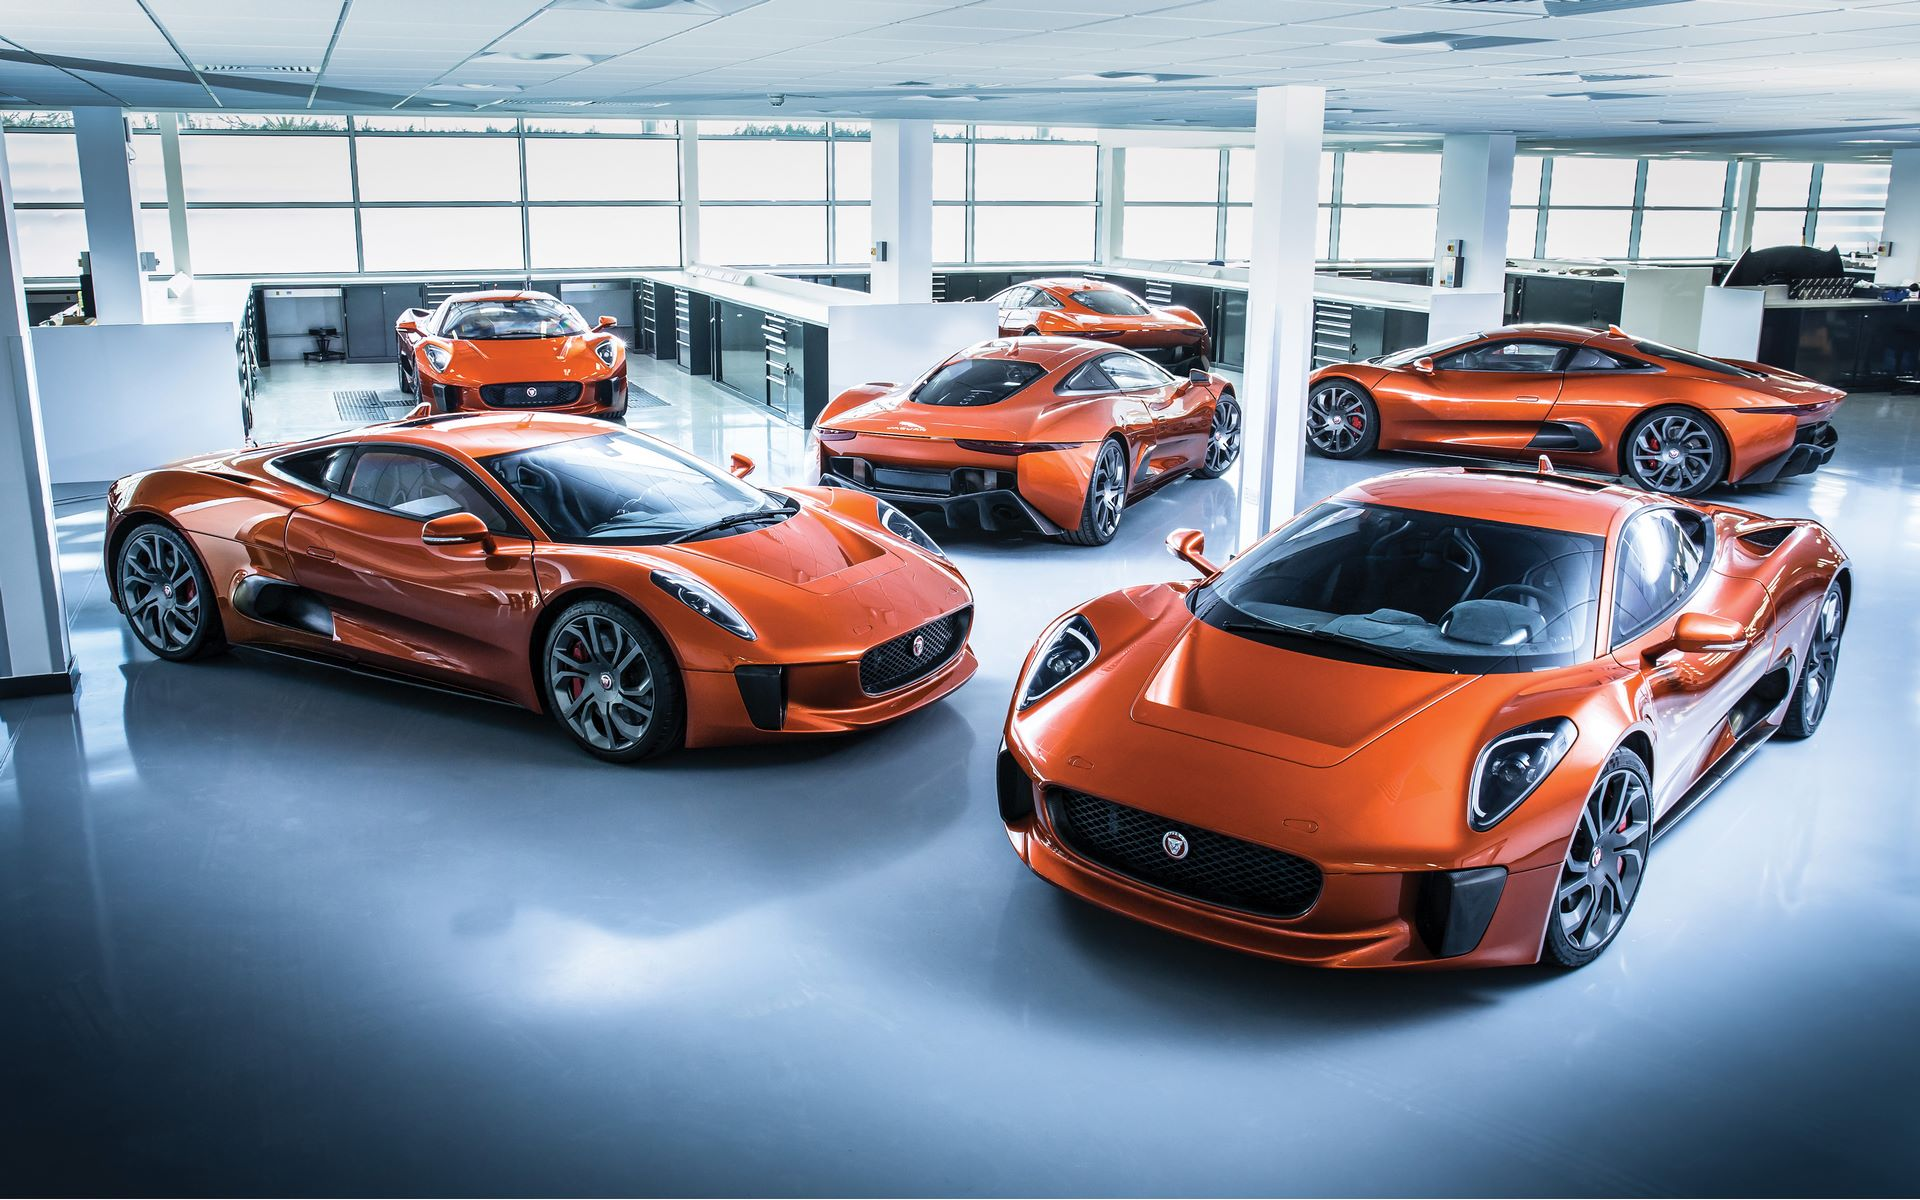 The lineup of Jaguar C-X75s at Williams prior to their release for on-screen duty in Spectre.